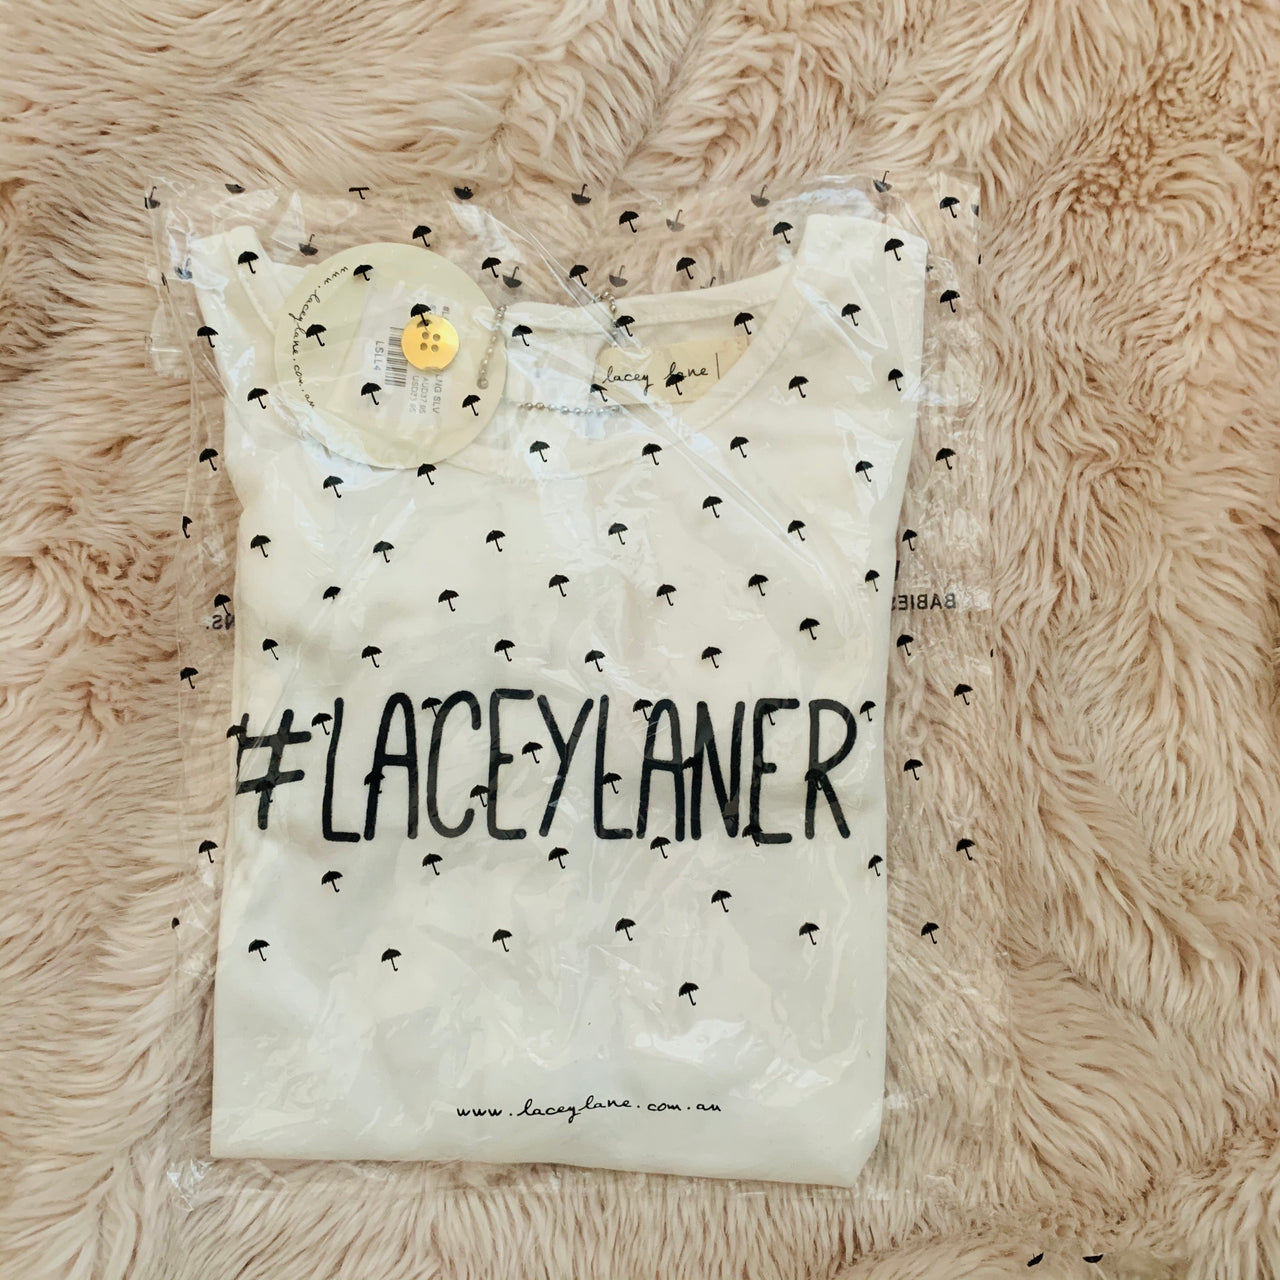 Destash - Lacey Lane - BNWT - Size 4 Long Sleeve #Laceylaner top